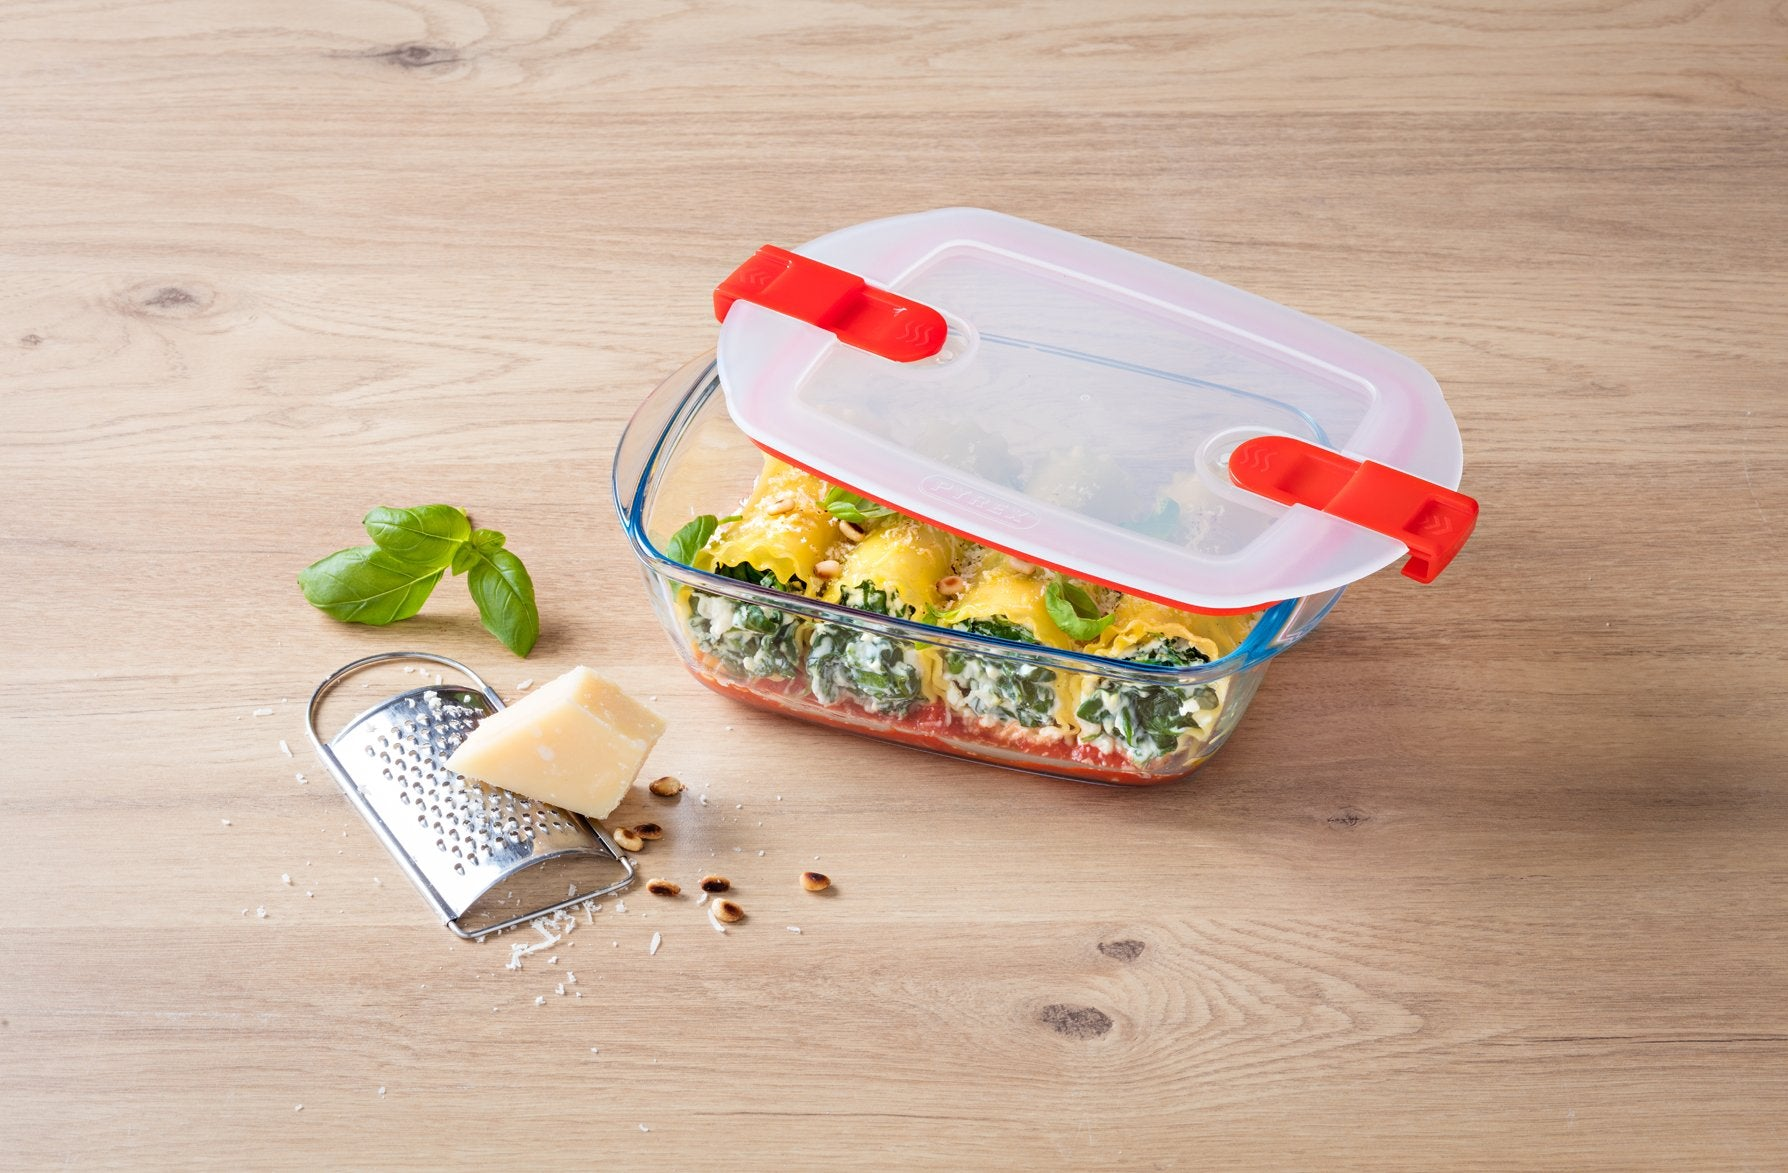 Glass containers - microwave safe lids - Pyrex® website